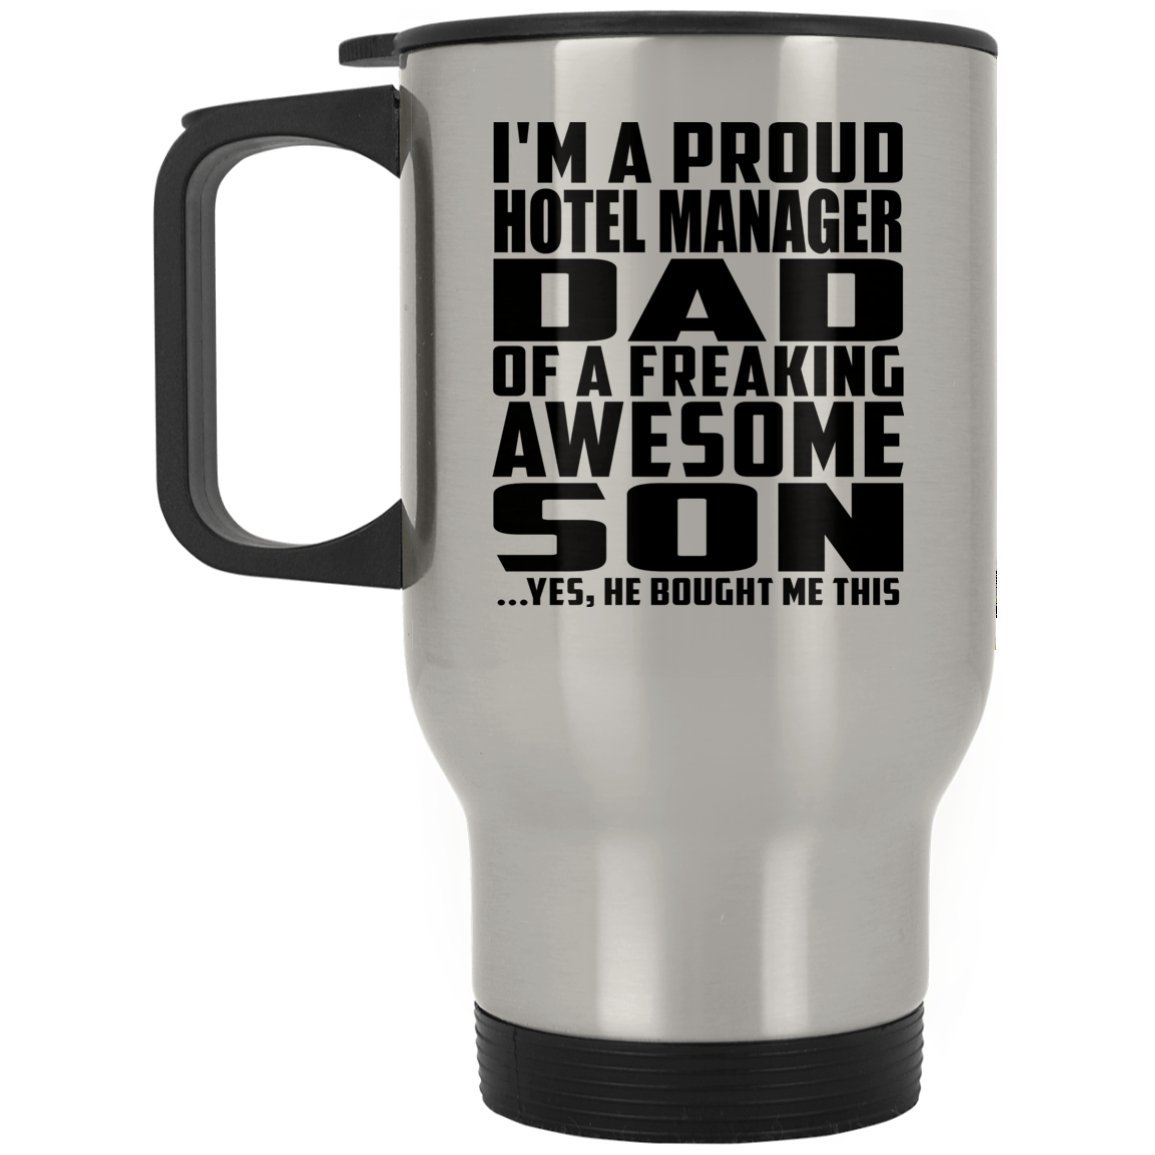 Dad Travel Mug, I'm A Proud Hotel Manager Dad Of A Freaking Awesome Son, He Bought Me This - Travel Mug, Stainless Steel Tumbler, Best Gift for Father Dad Daddy from Son Kid